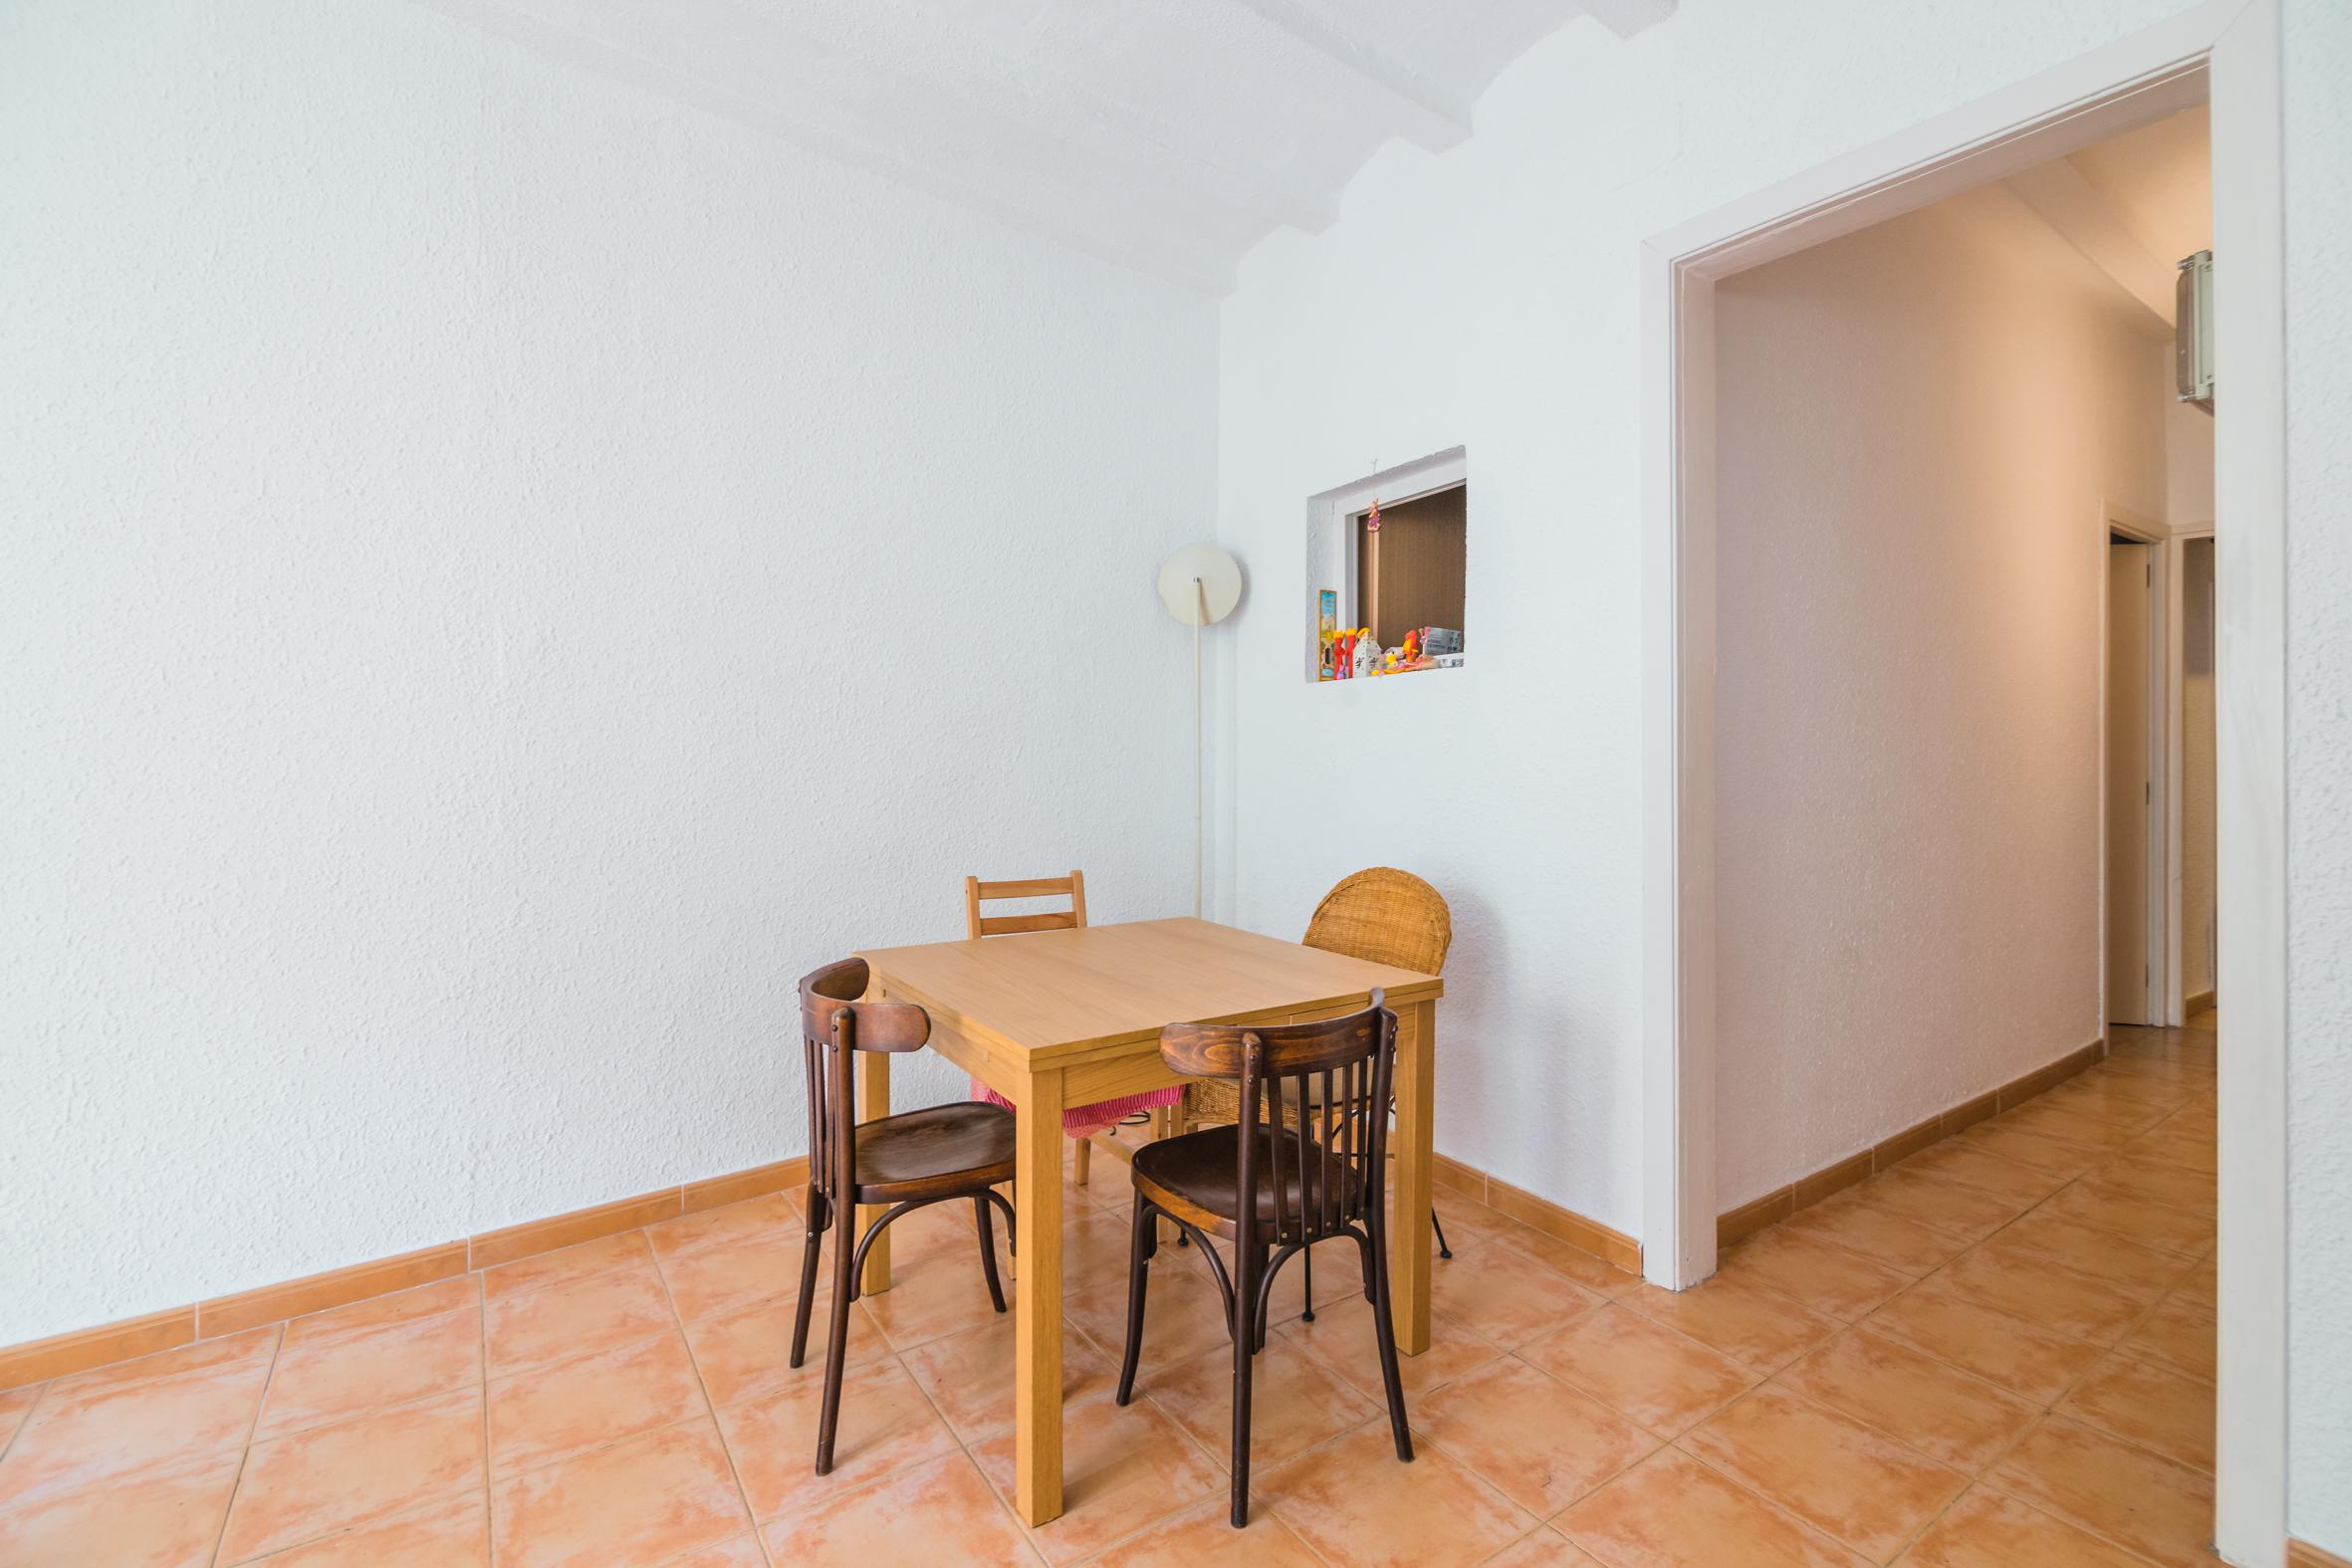 208481 Apartment for sale in Ciutat Vella, Barri Gòtic 8